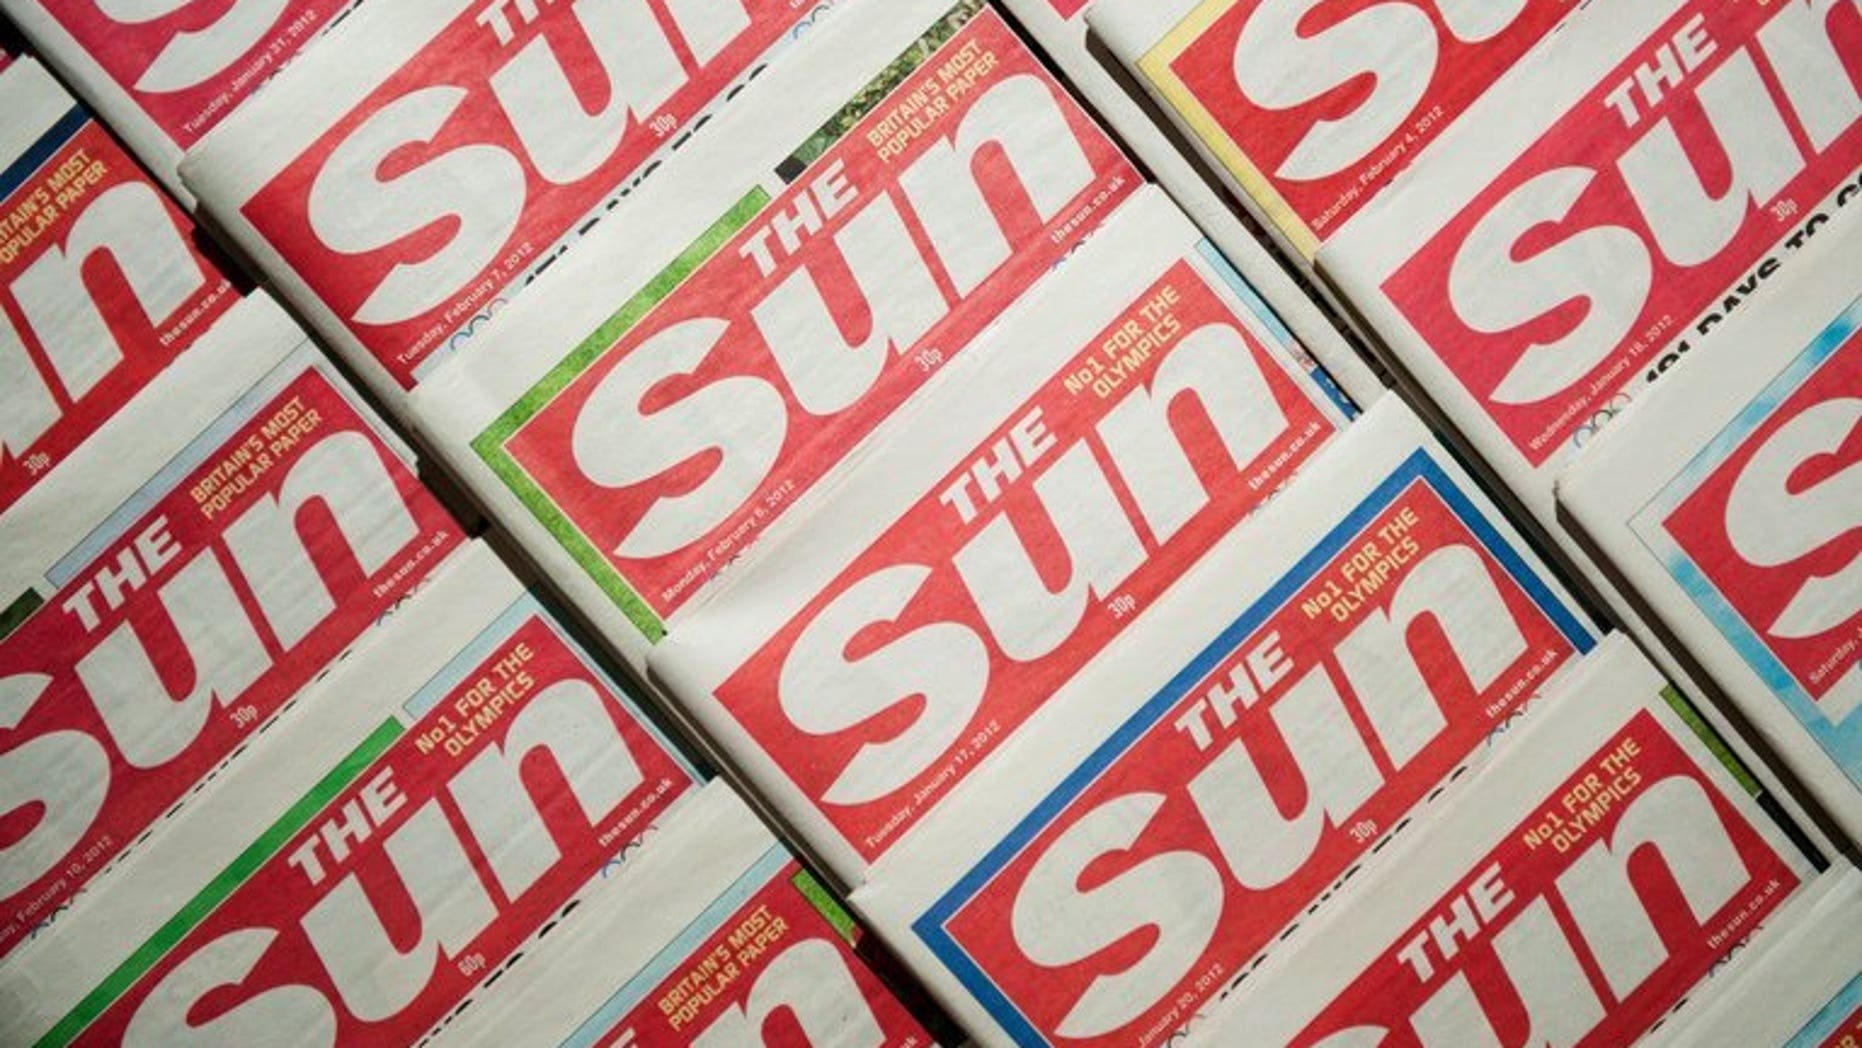 Picture shows an arrangement of copies of The Sun tabloid on February 13, 2012. Two journalists from Rupert Murdoch's The Sun were charged in Britain on Friday, accused of paying officials for information about hospital patients, the royal family and ongoing police investigations.